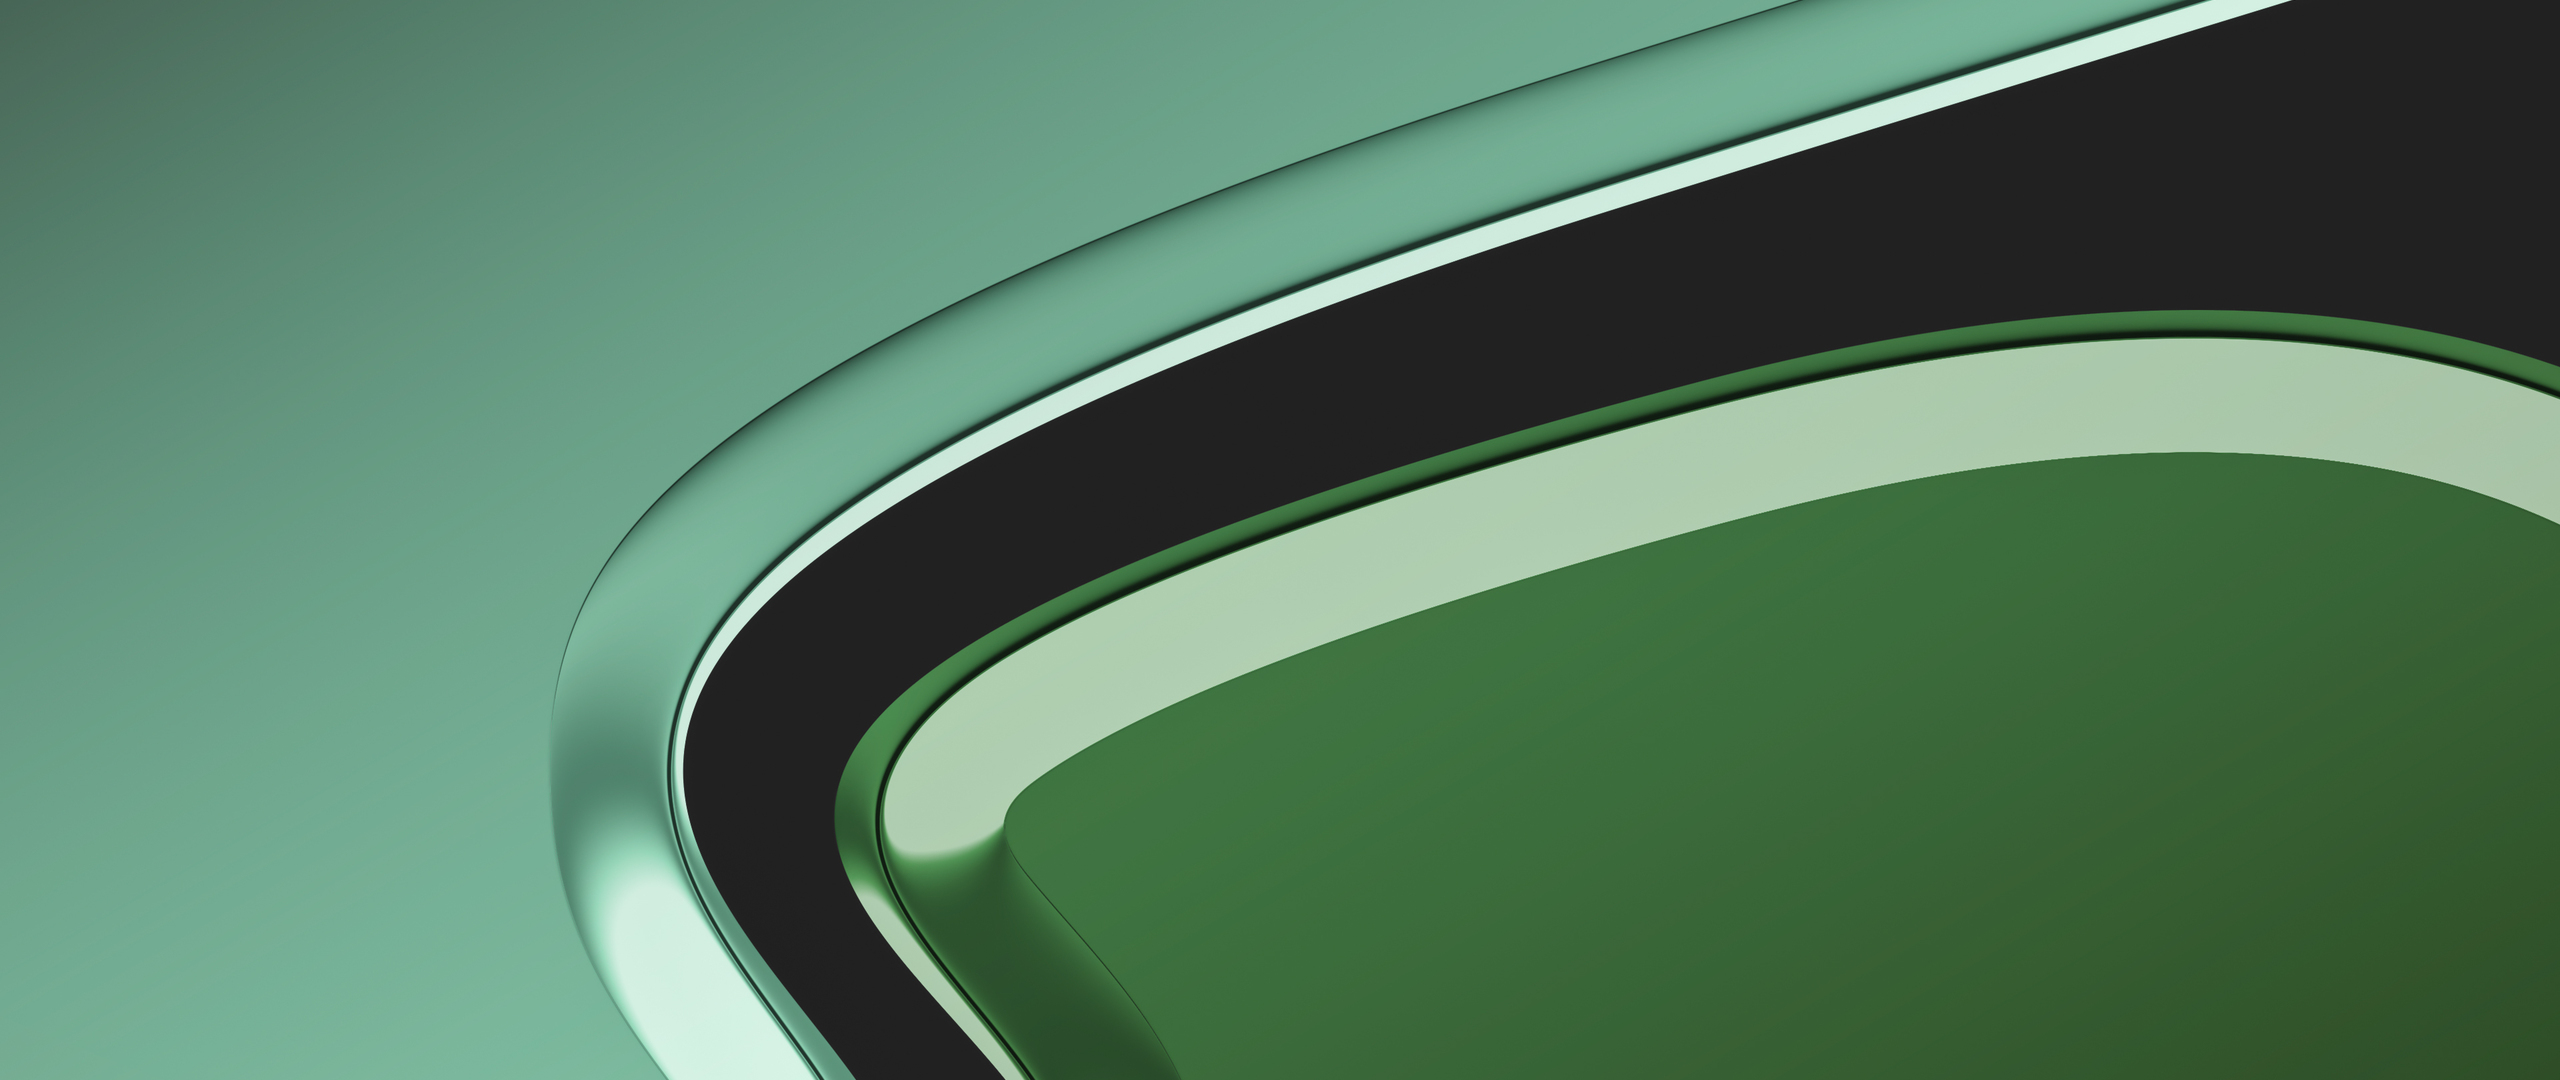 green-color-flow-abstract-4k-gg.jpg